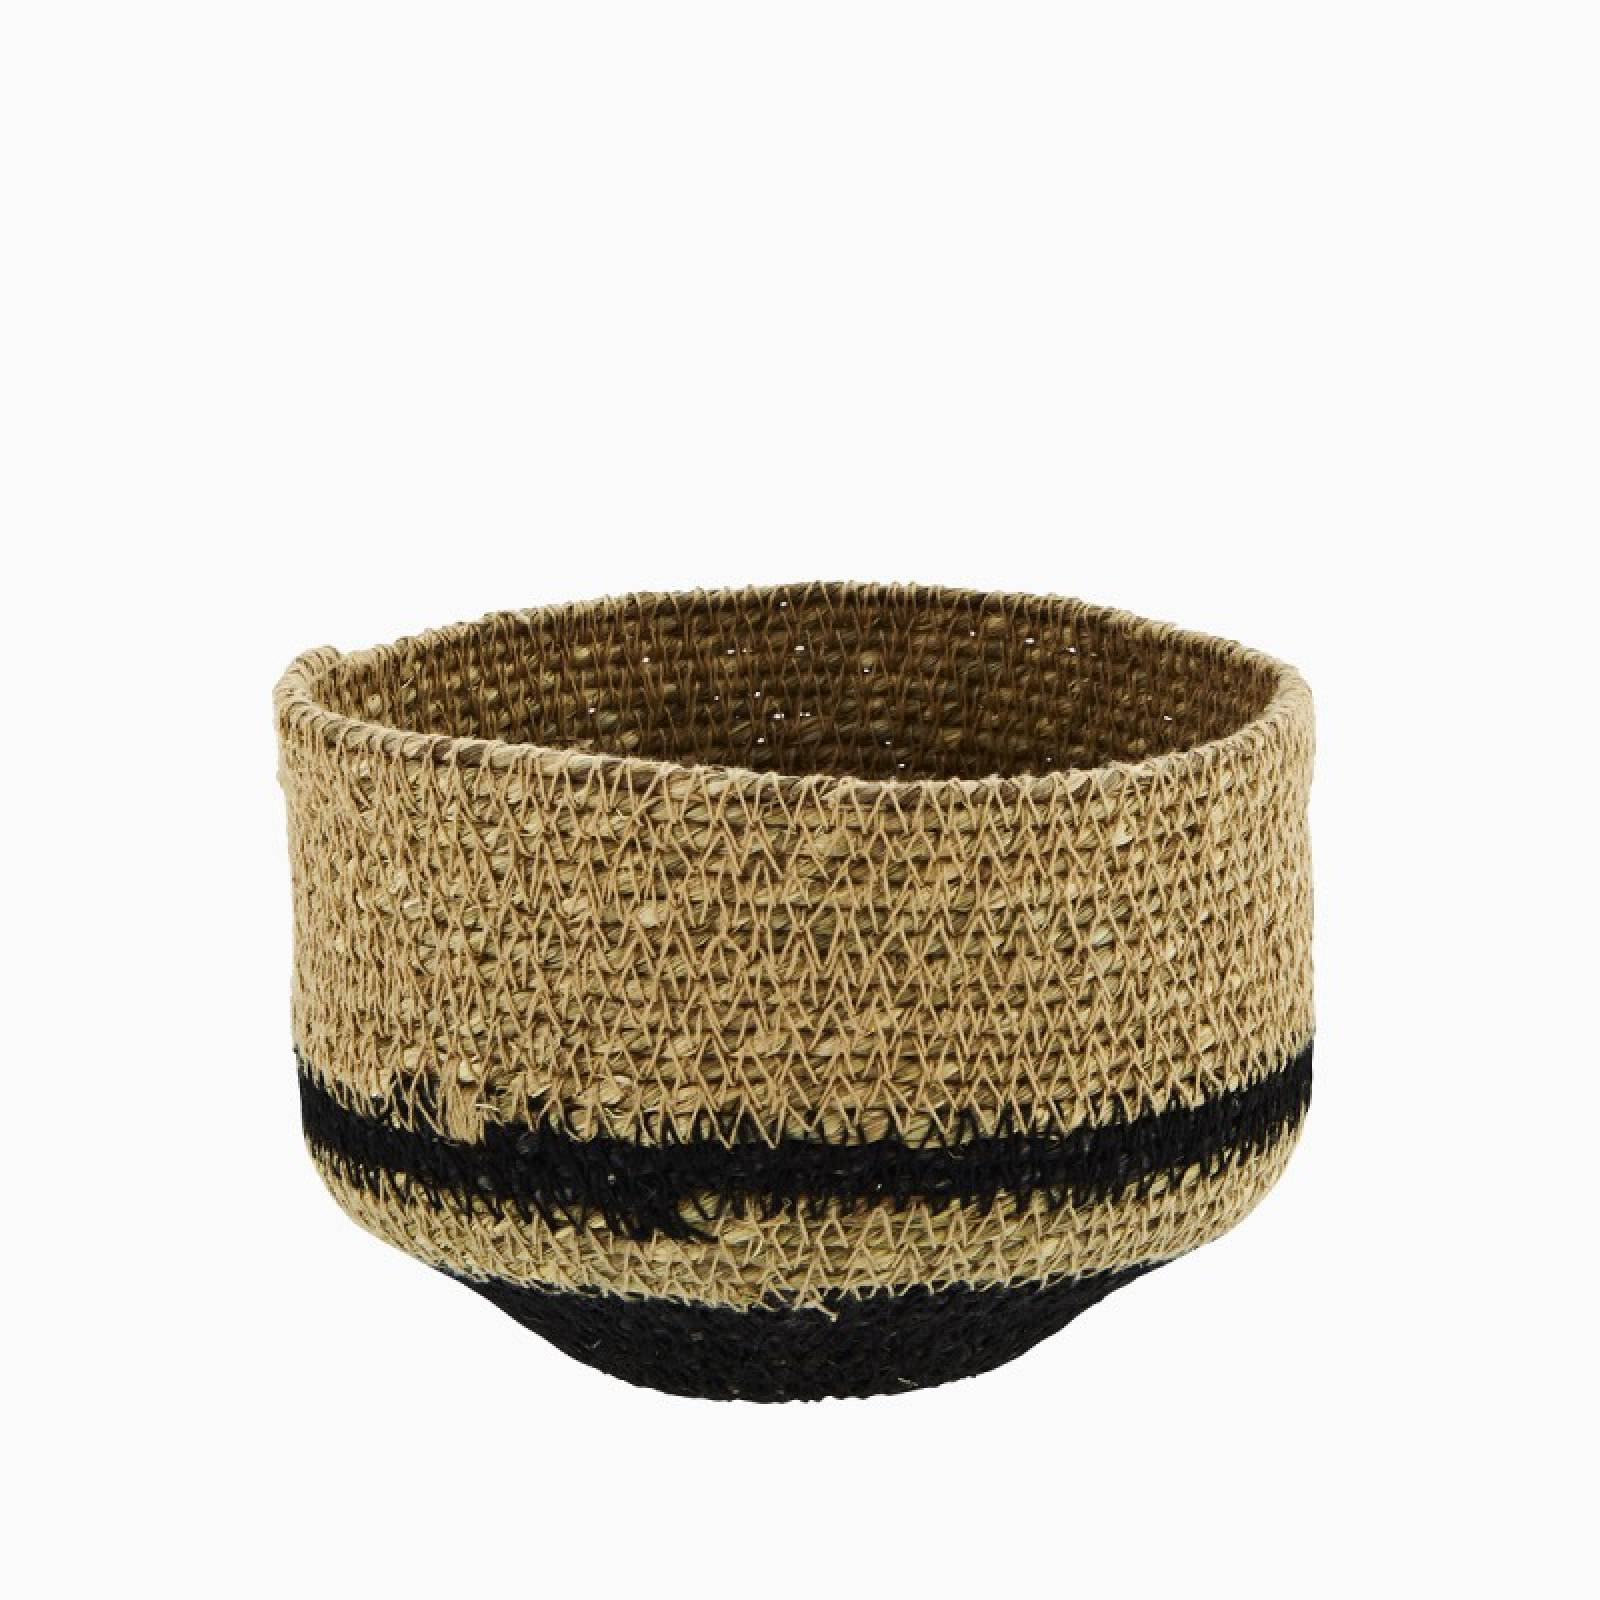 Small Black & Natural Seagrass Tapered Basket